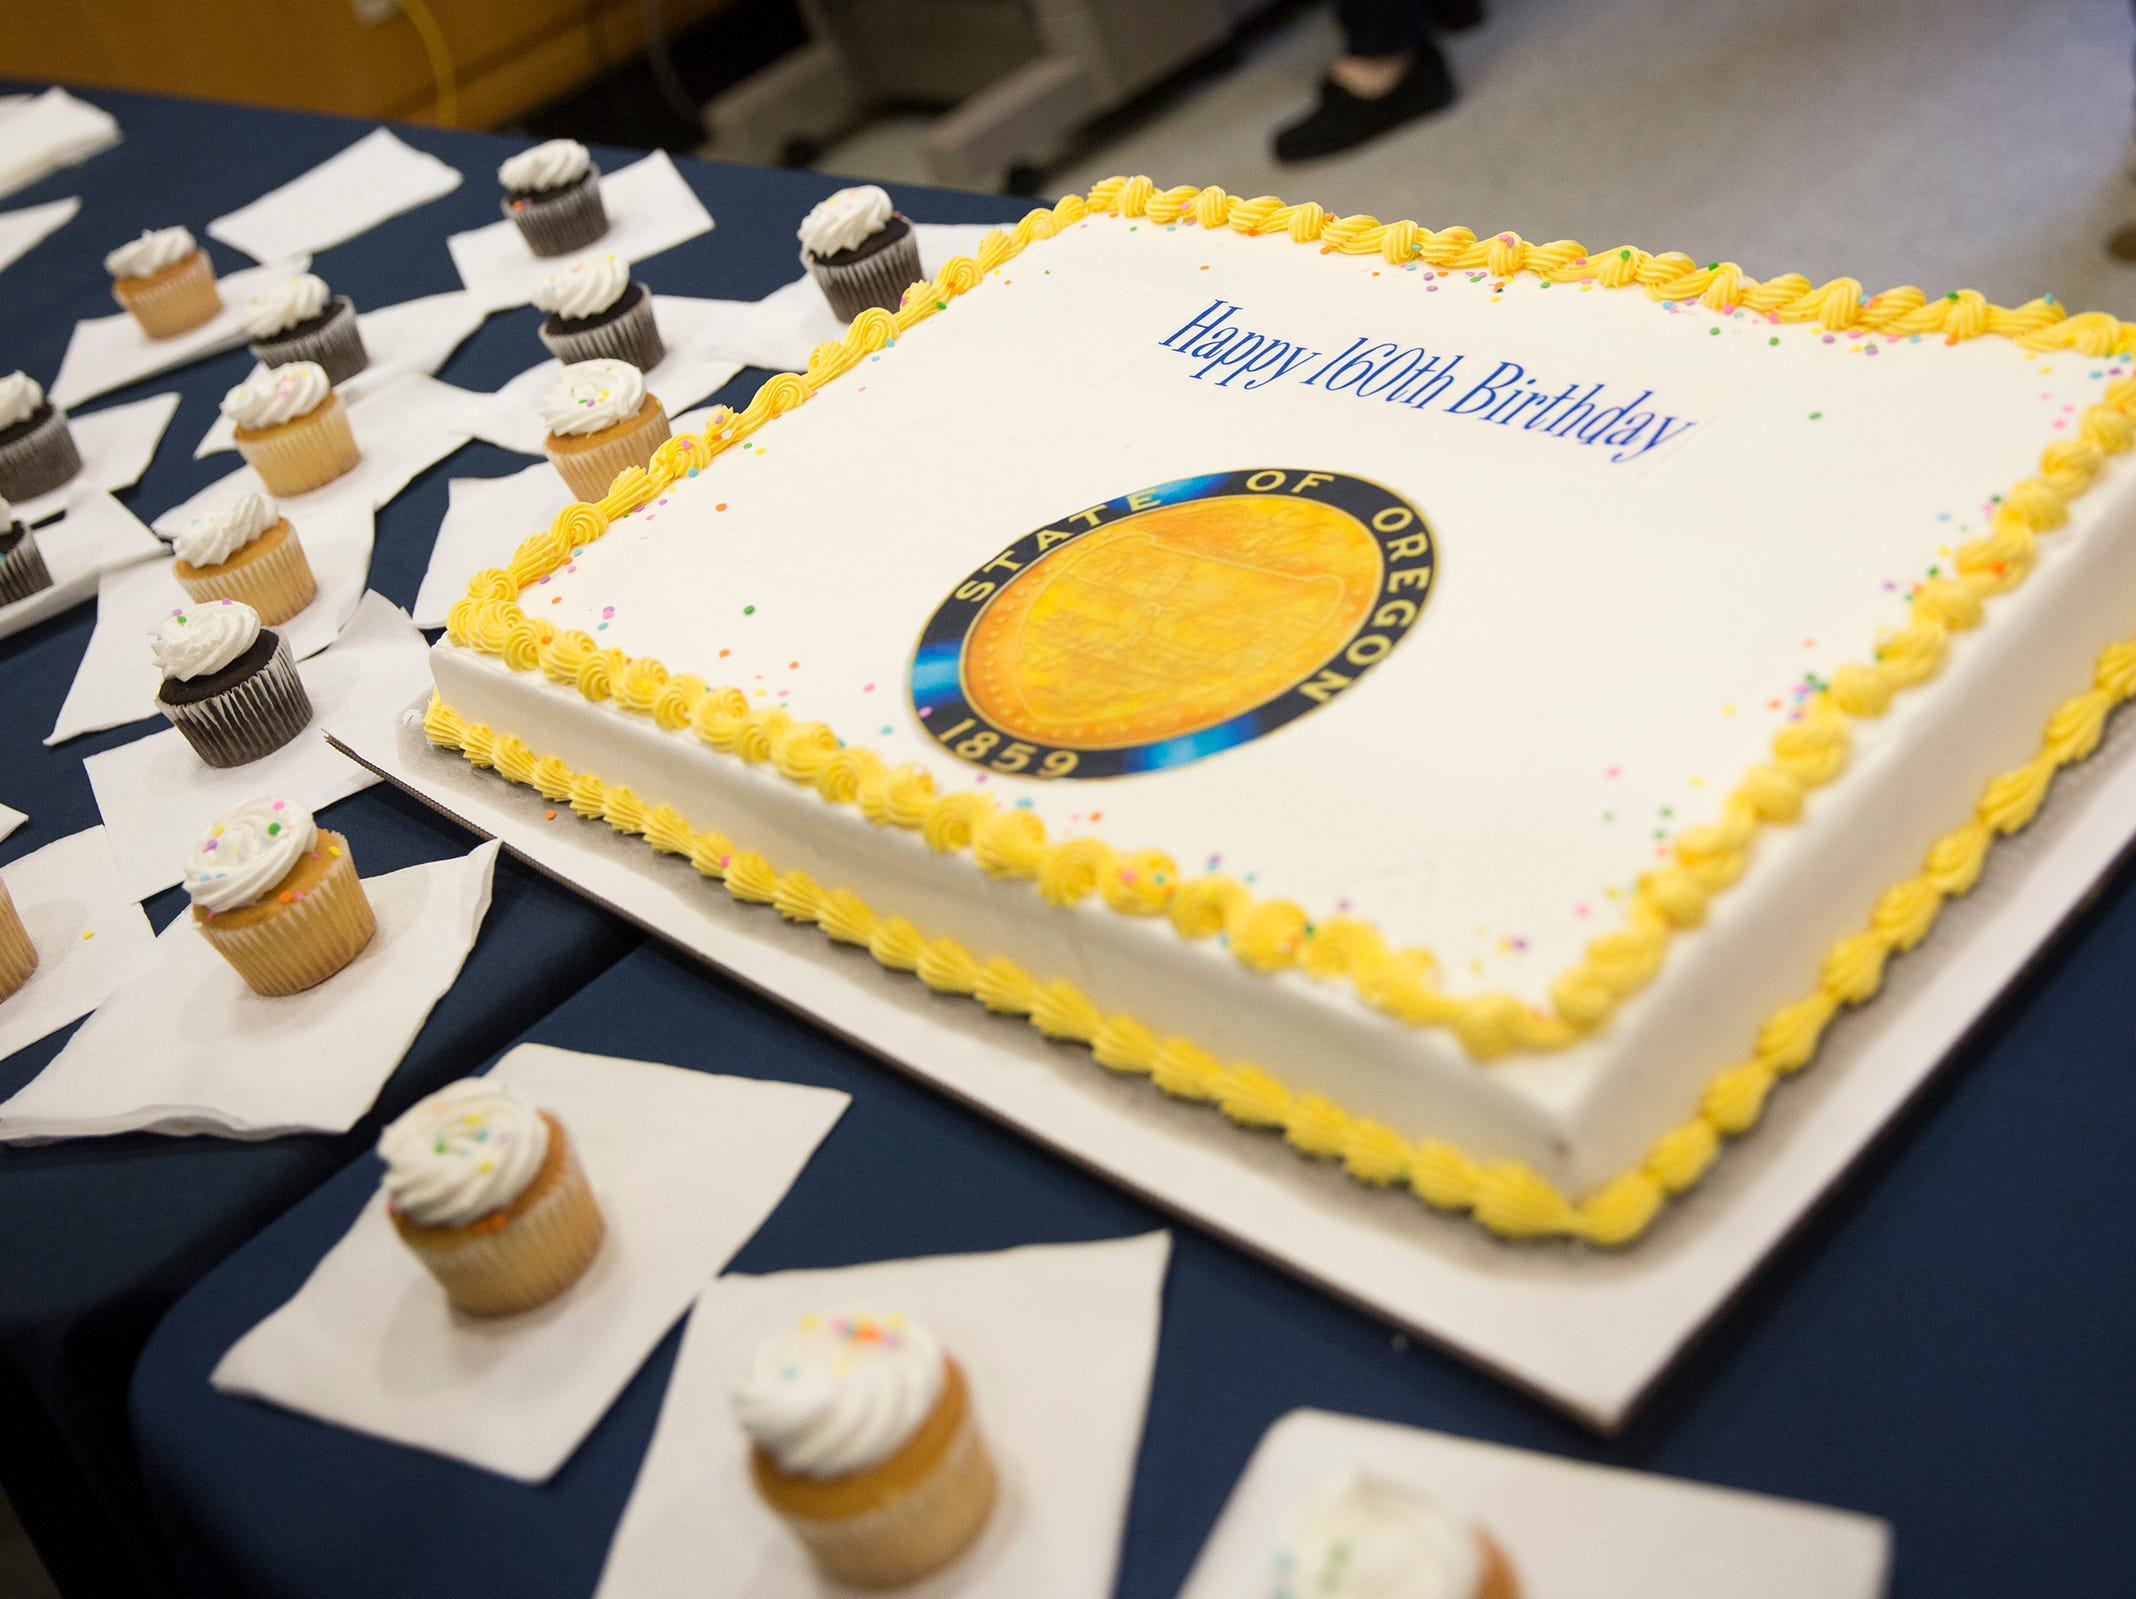 Birthday cake and cupcakes are served during Oregon's 160th Birthday Celebration at the Oregon State Capitol in Salem on Saturday, Feb. 16, 2019.